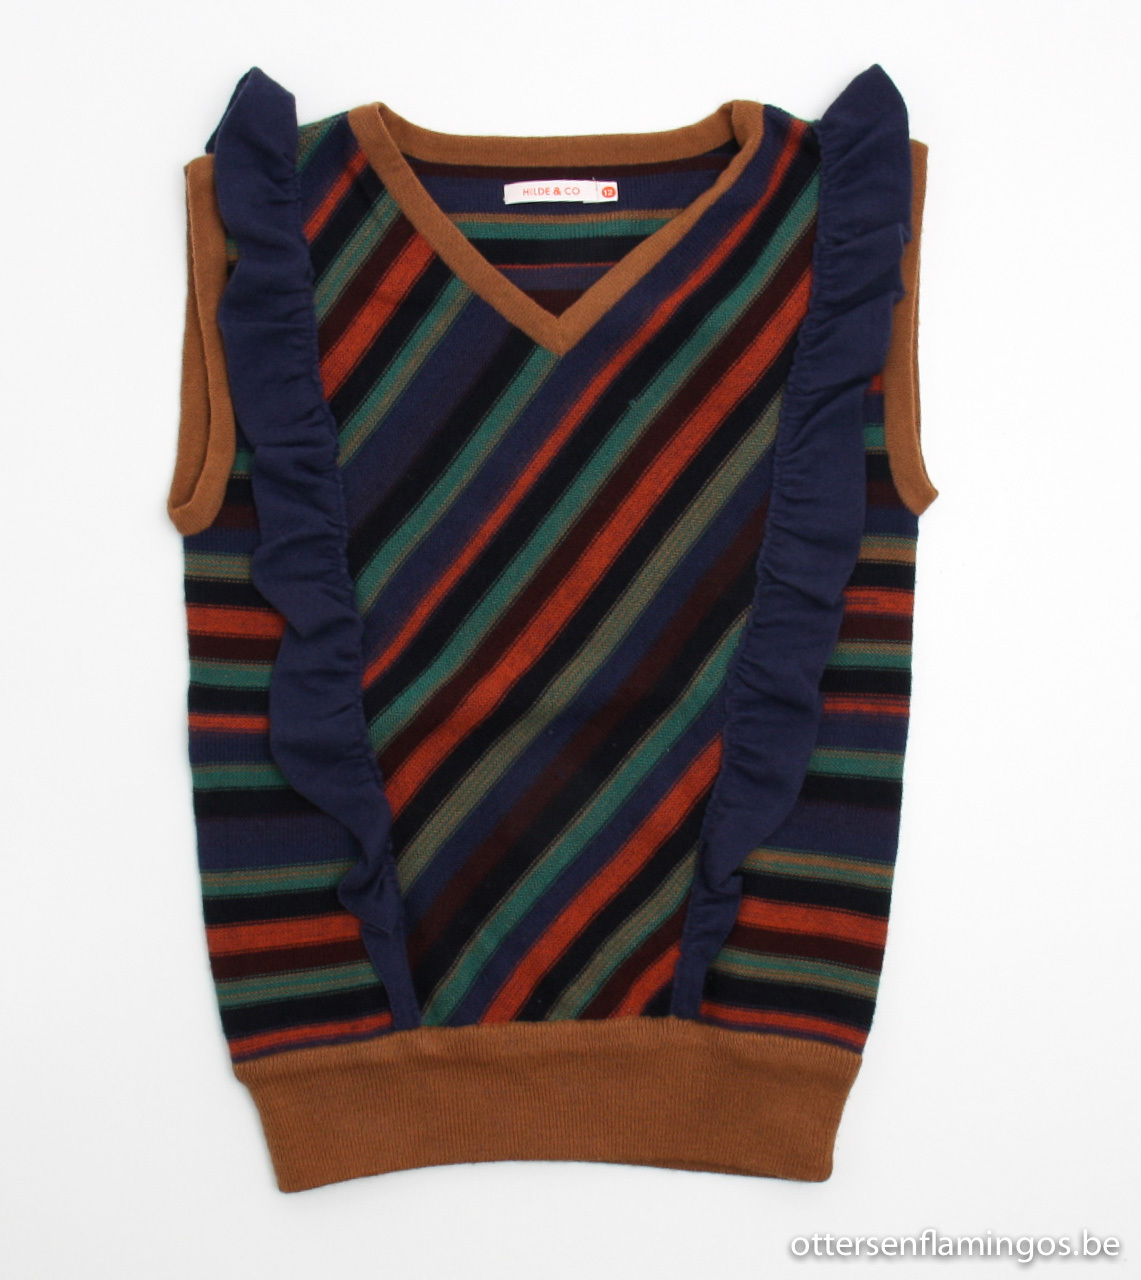 Tricot top, Hilde en Co, 152